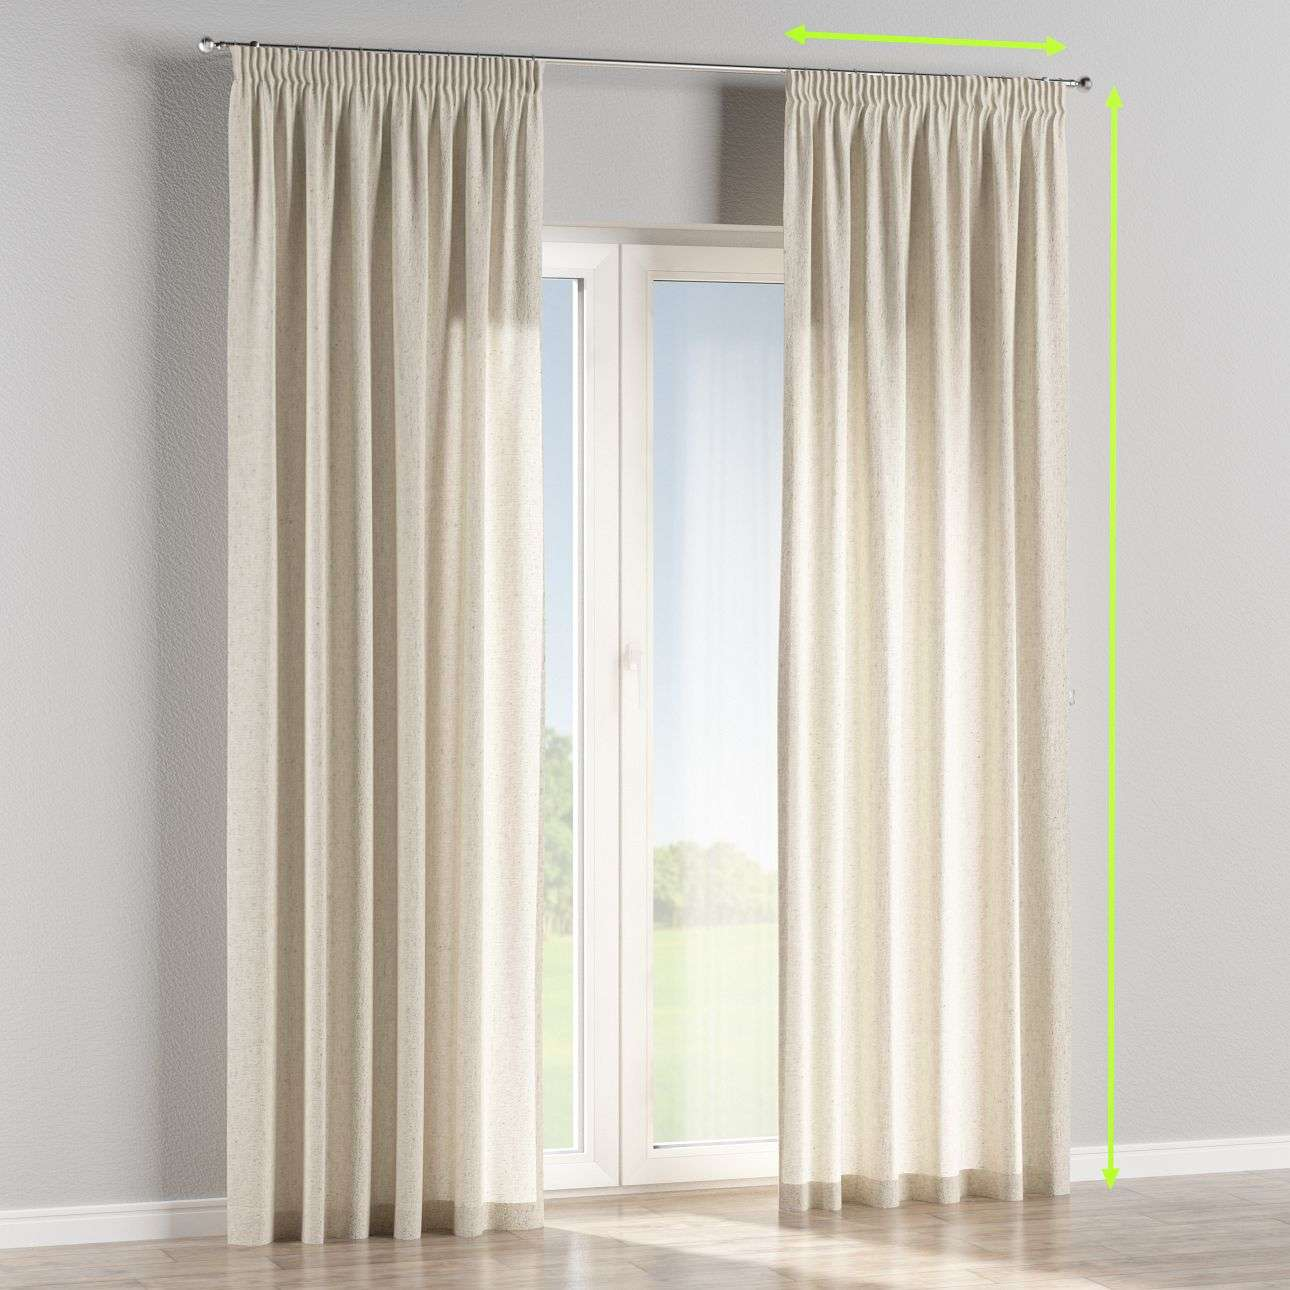 Pencil pleat lined curtains in collection Loneta , fabric: 133-65